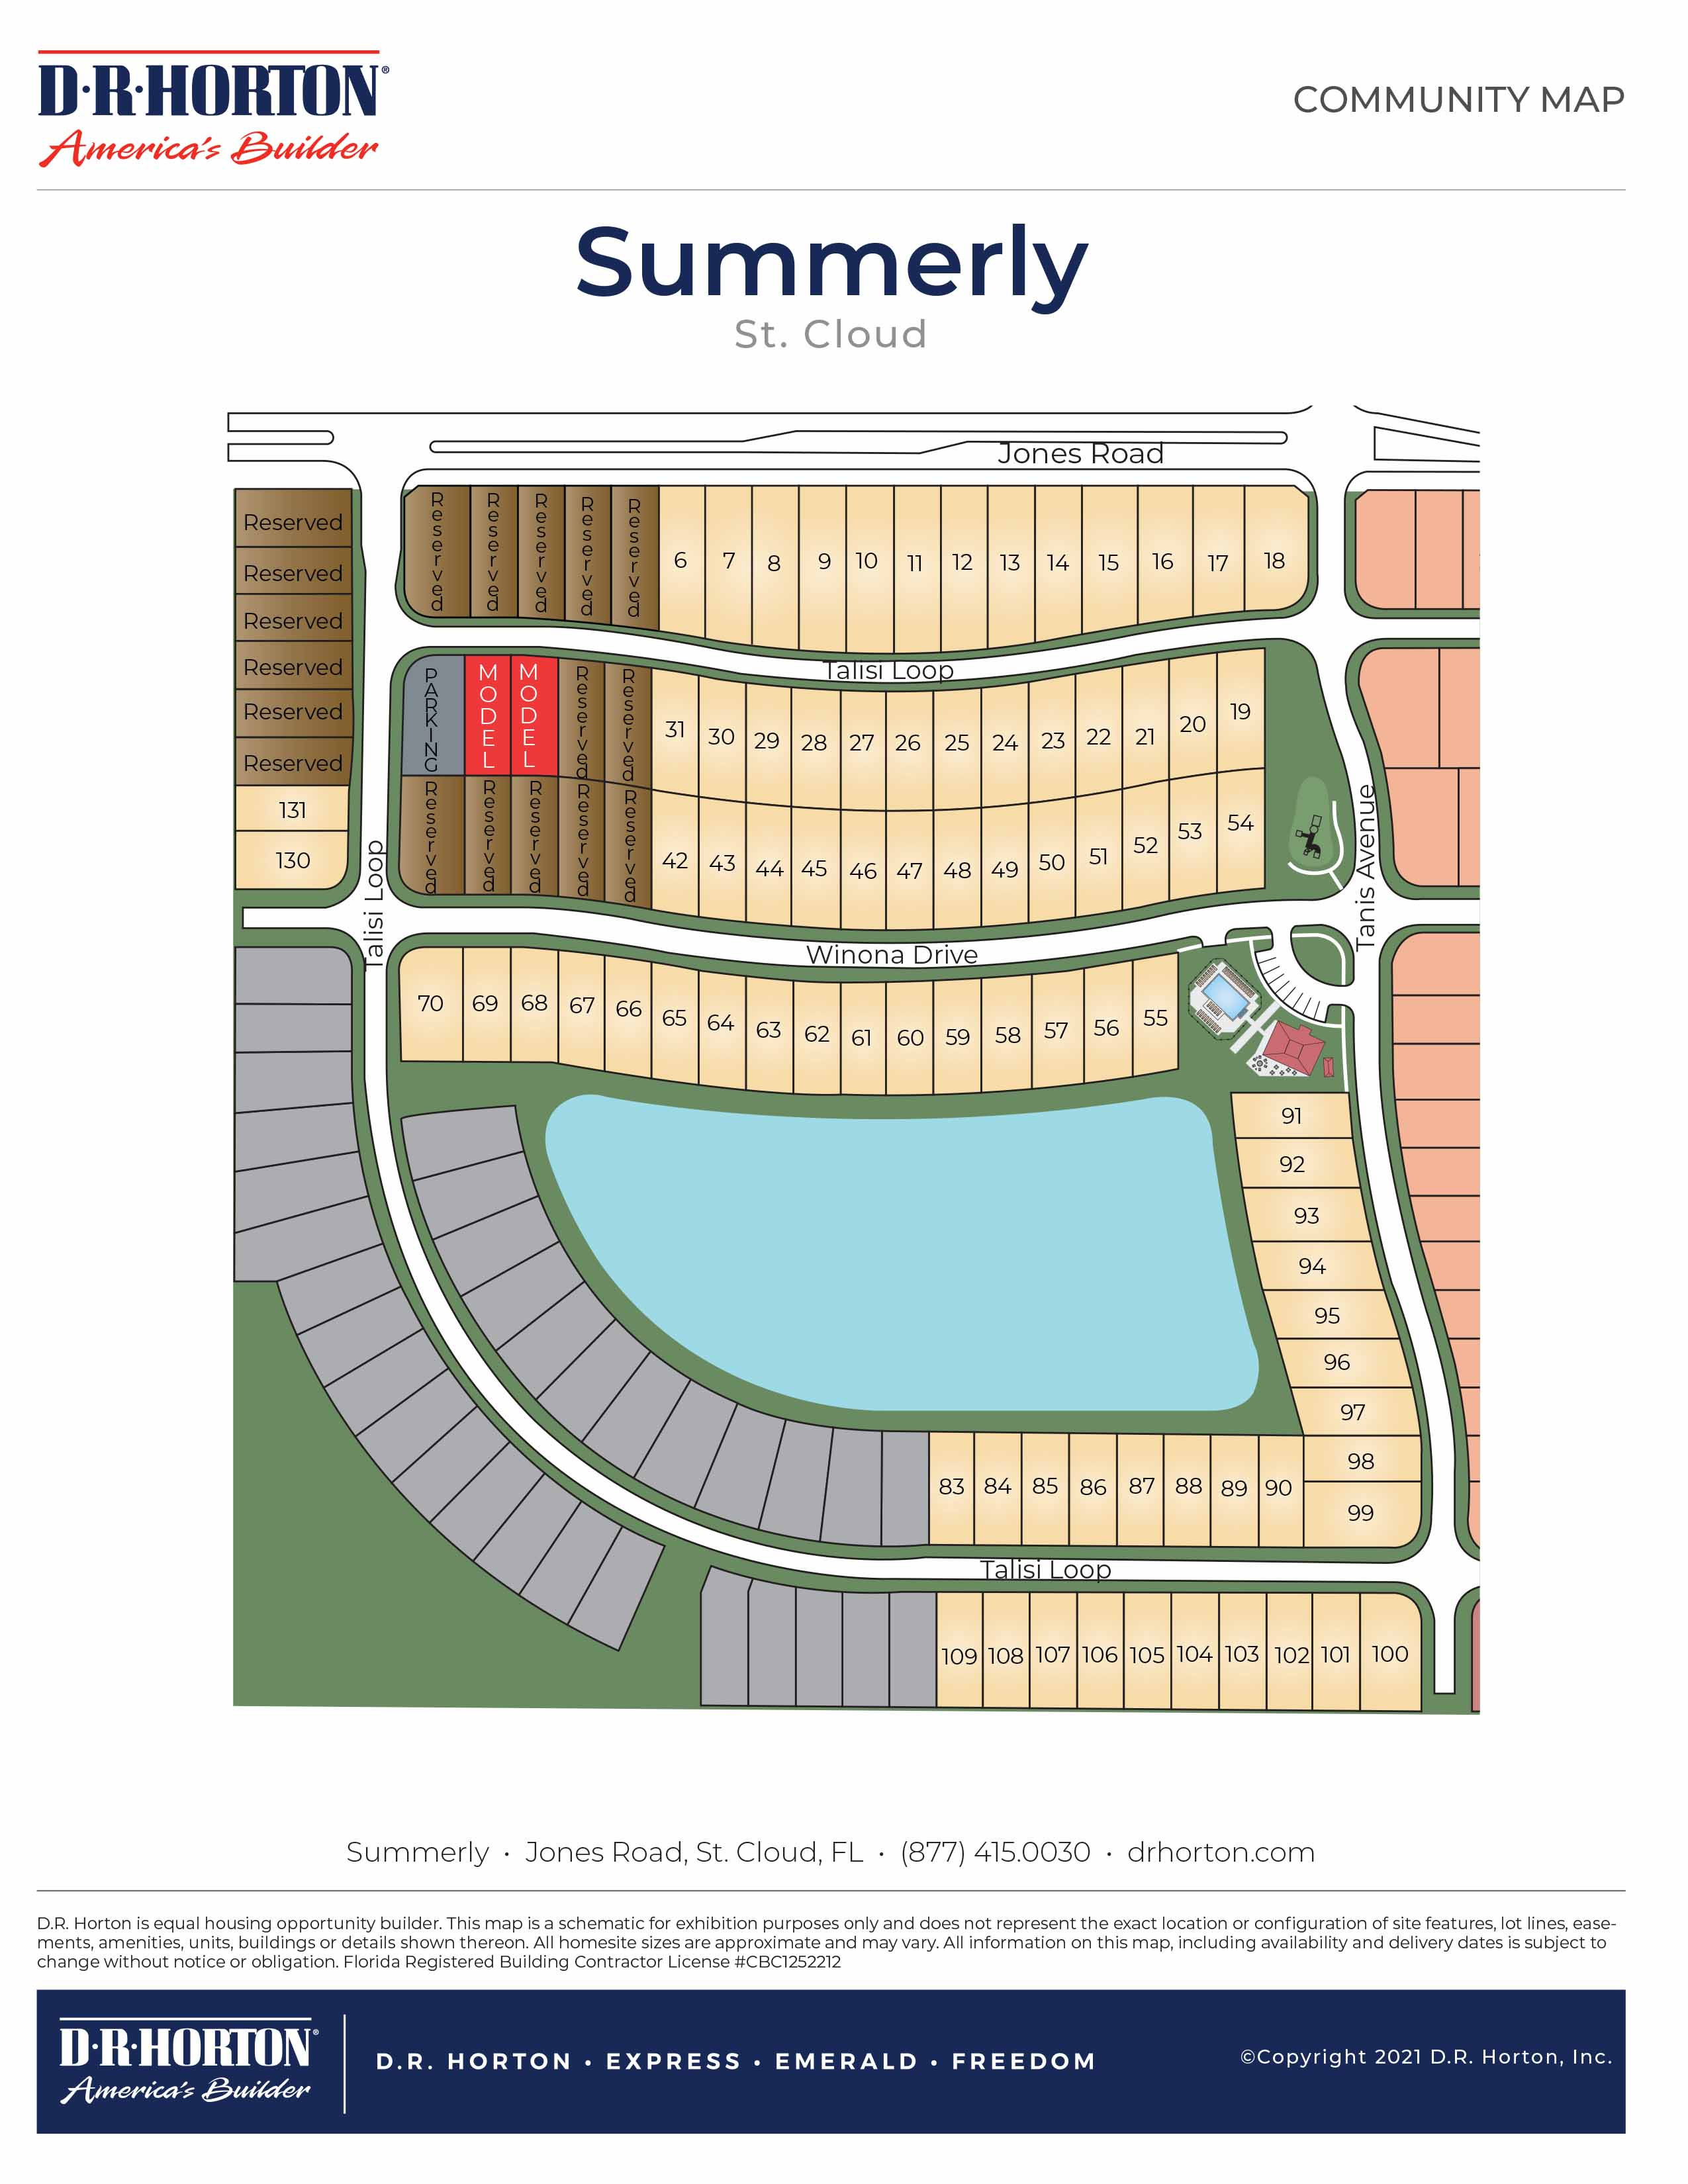 New Homes In Summerly St Cloud Fl D R Horton